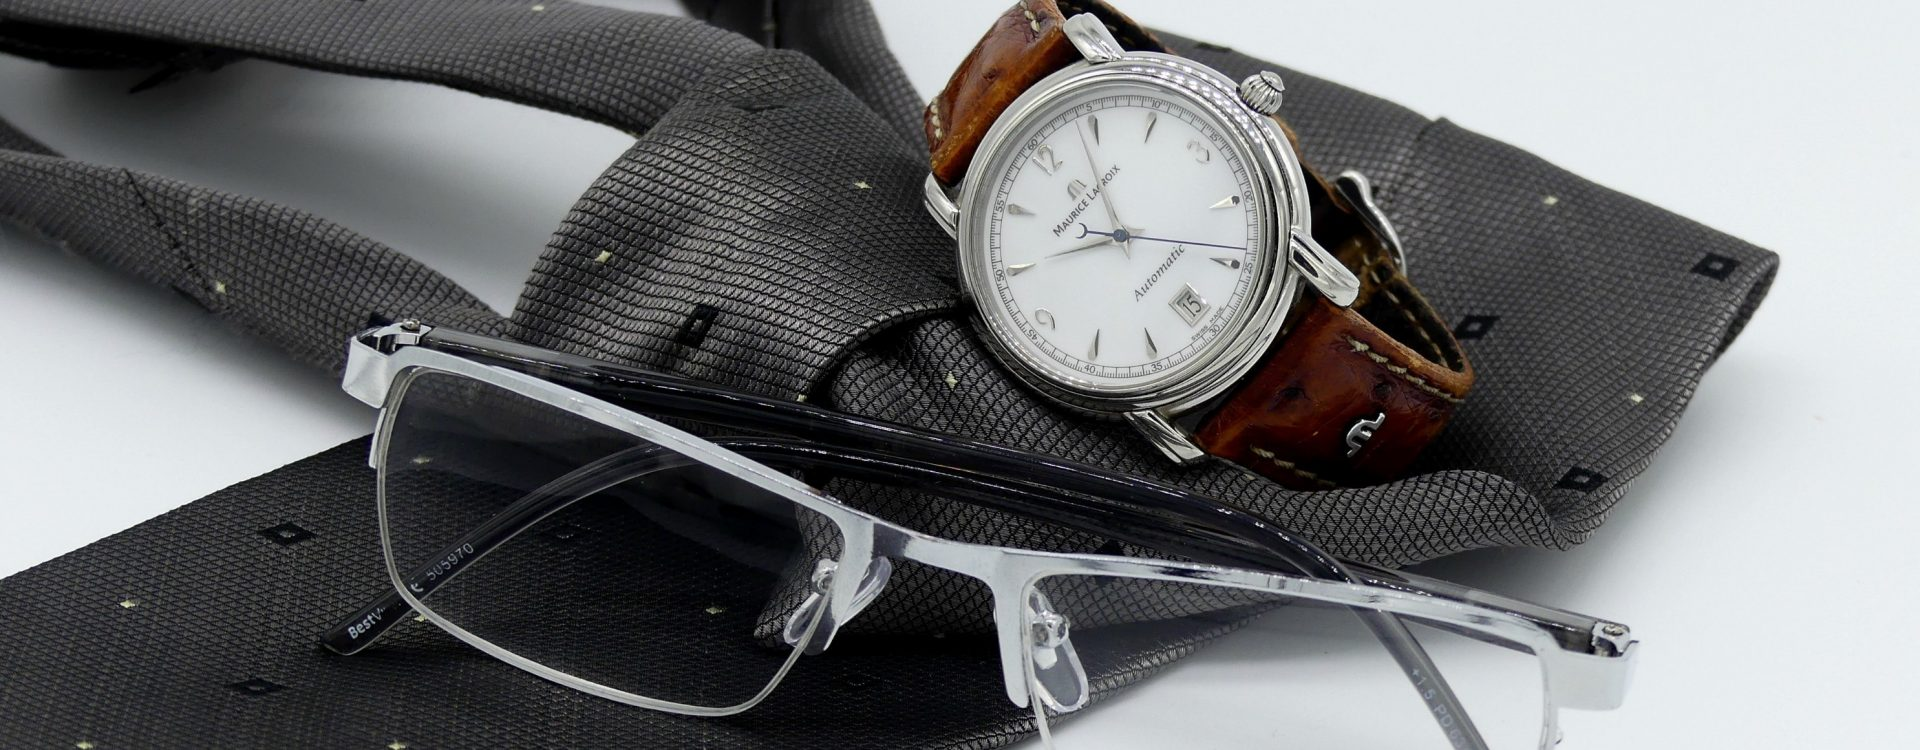 Top 10 Men's Accessories You Should Wear For A Special Occasion